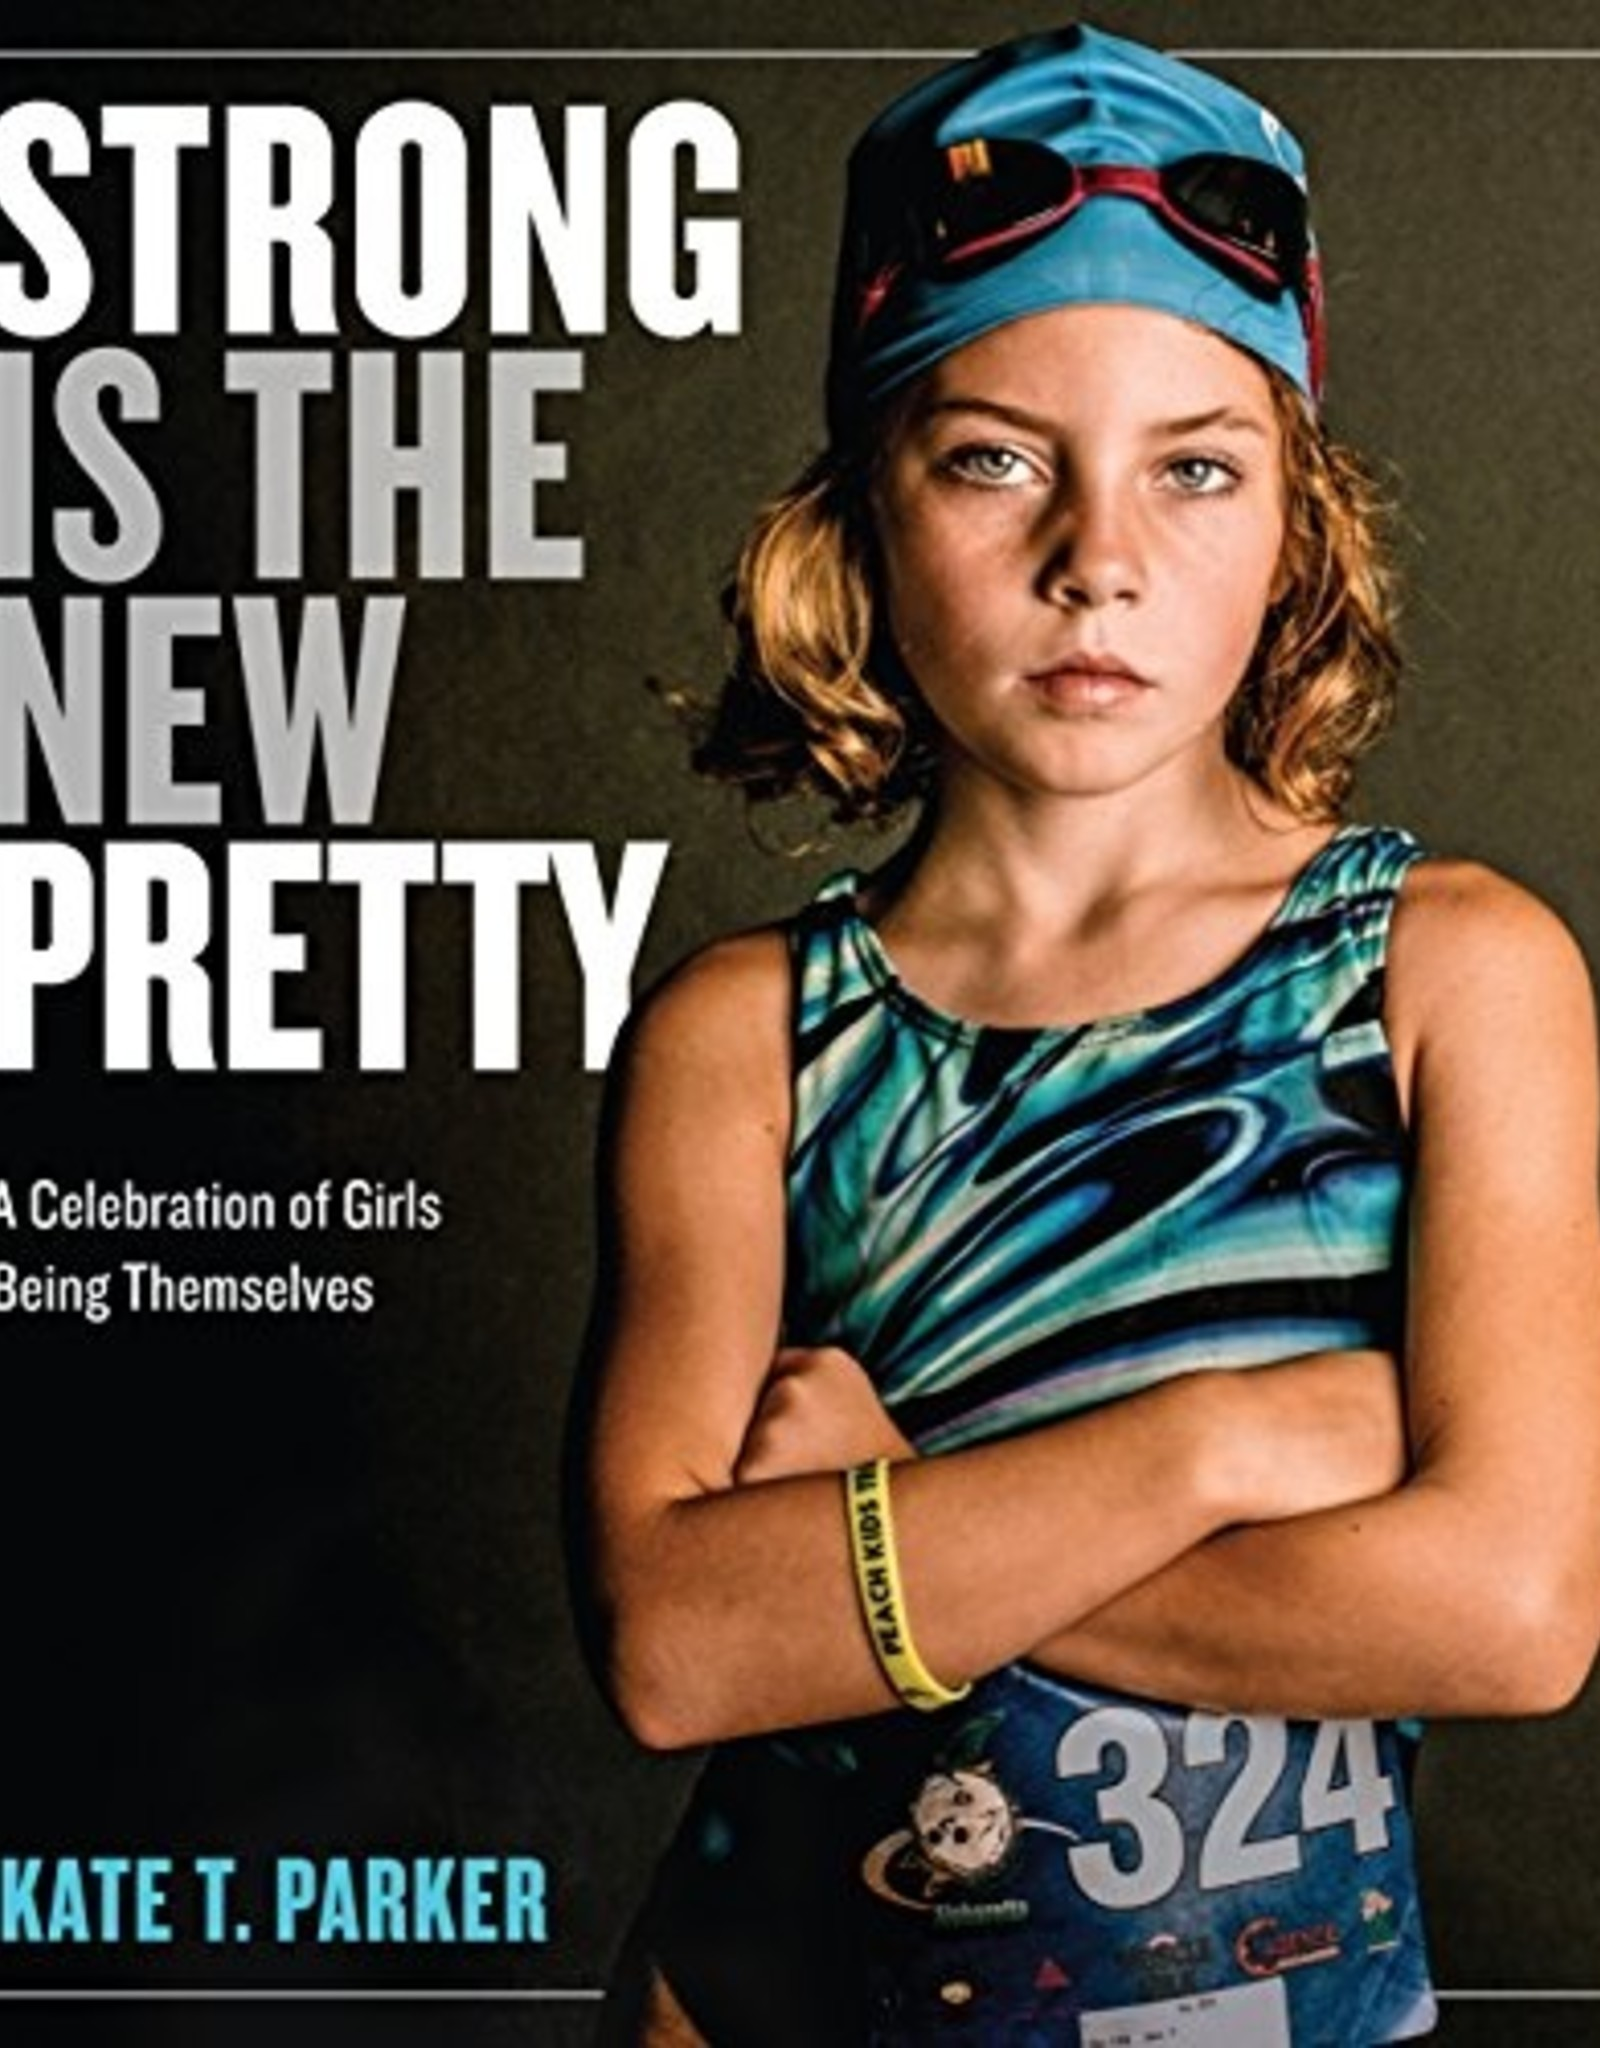 Strong Is the New Pretty, A Celebration of Girls Being Themselves - PB